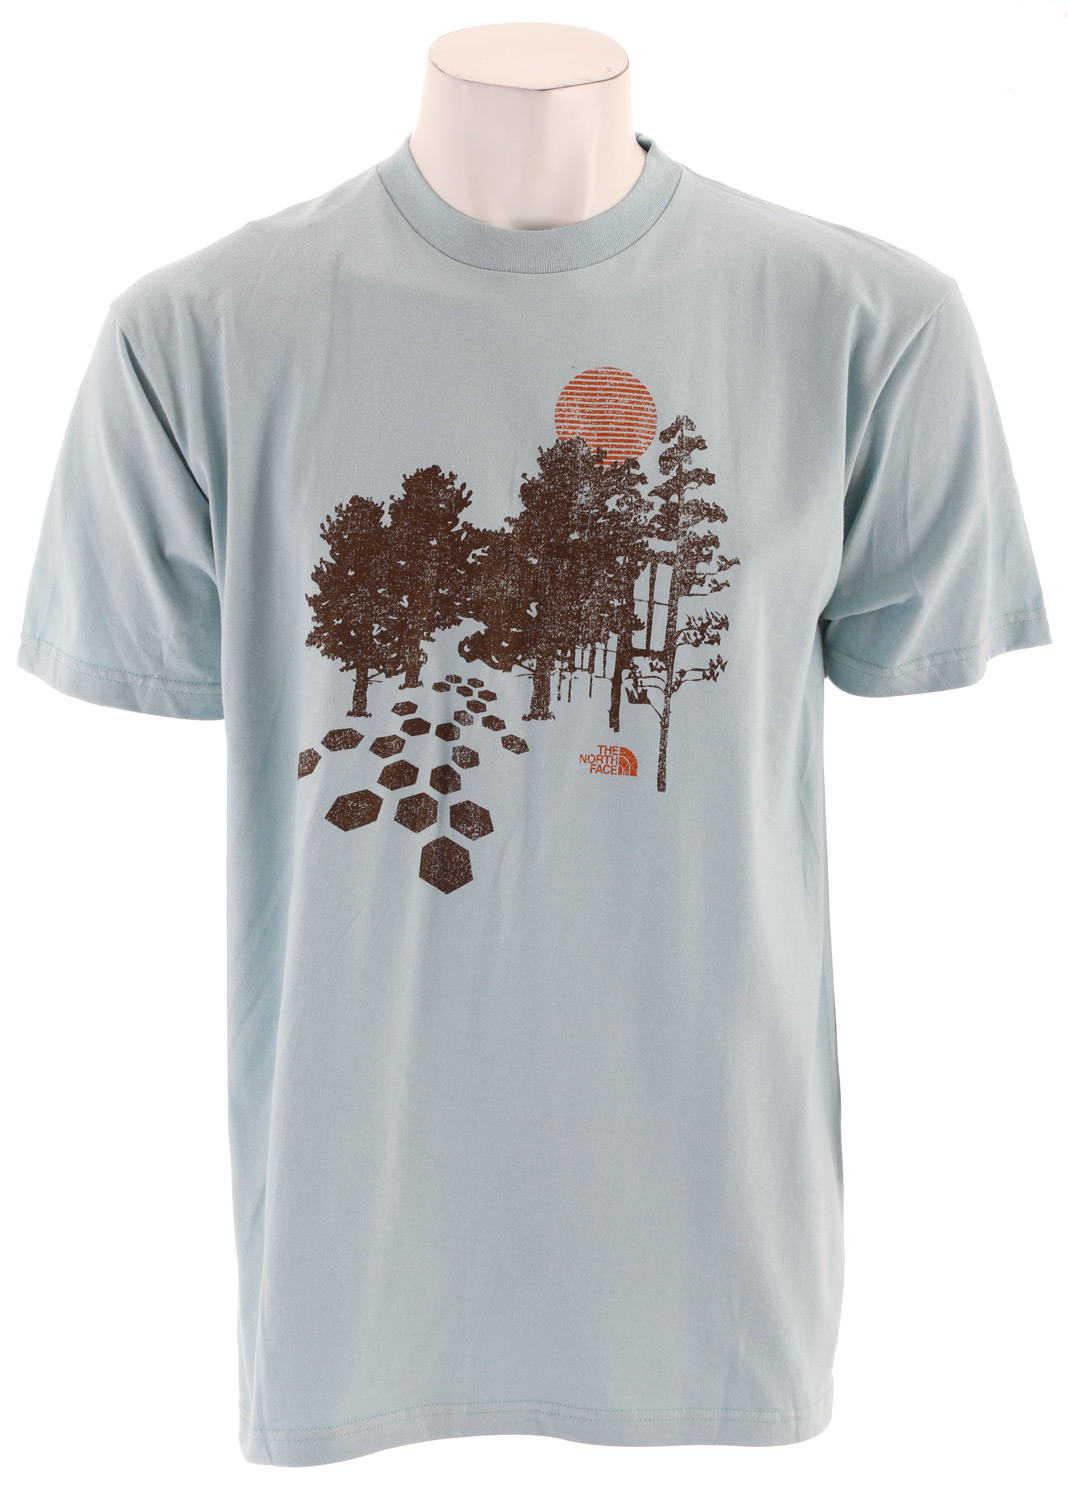 Key Features of The The North Face Pathaway T-Shirt: Regular Fit Crew Neck Short Sleeve Fabric: 94% cotton, 6% organic cotton jersey Comfortable, lightweight, easy-care fabric 1x1 rib on collar Graphic in plastisol print at chest - $19.95